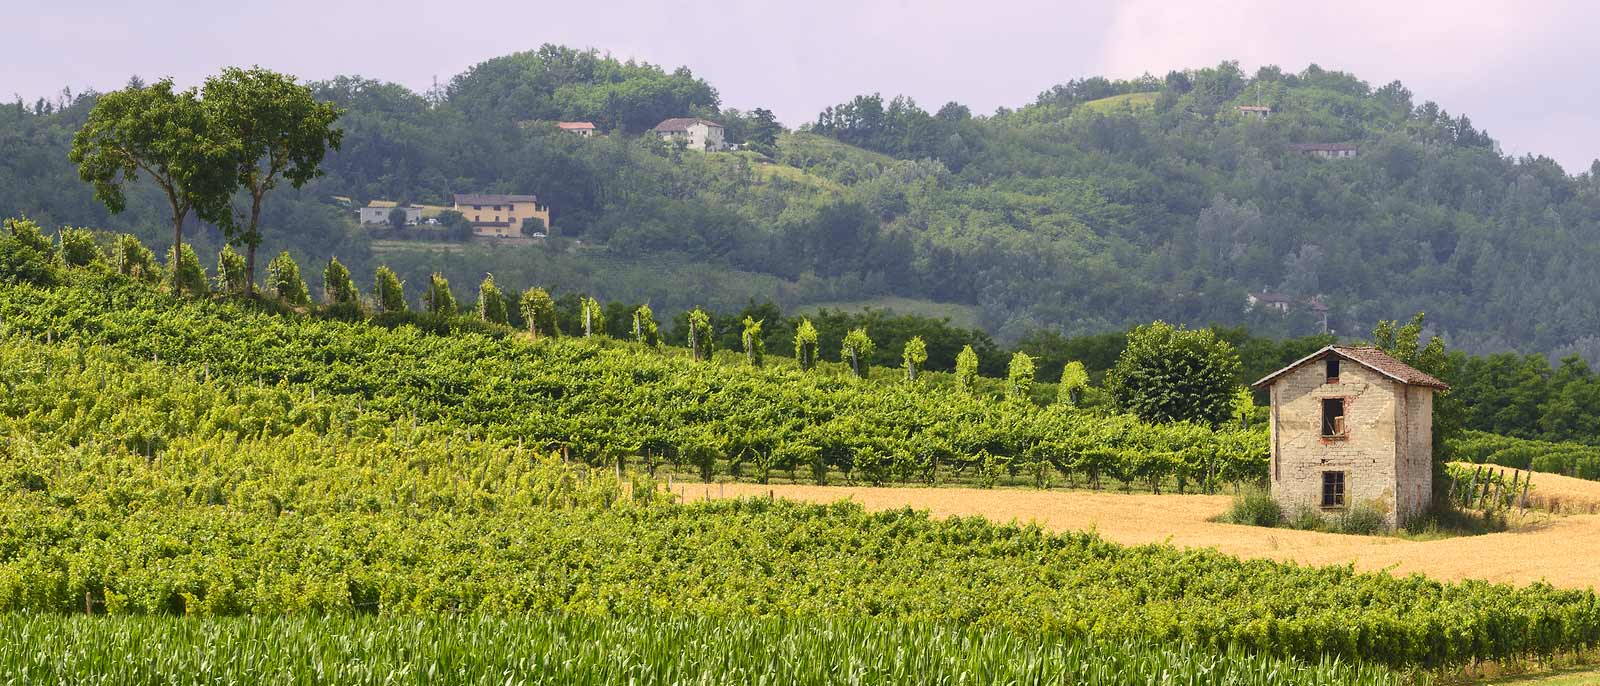 Monferrato Hills in summer, just outside the city of Asti.